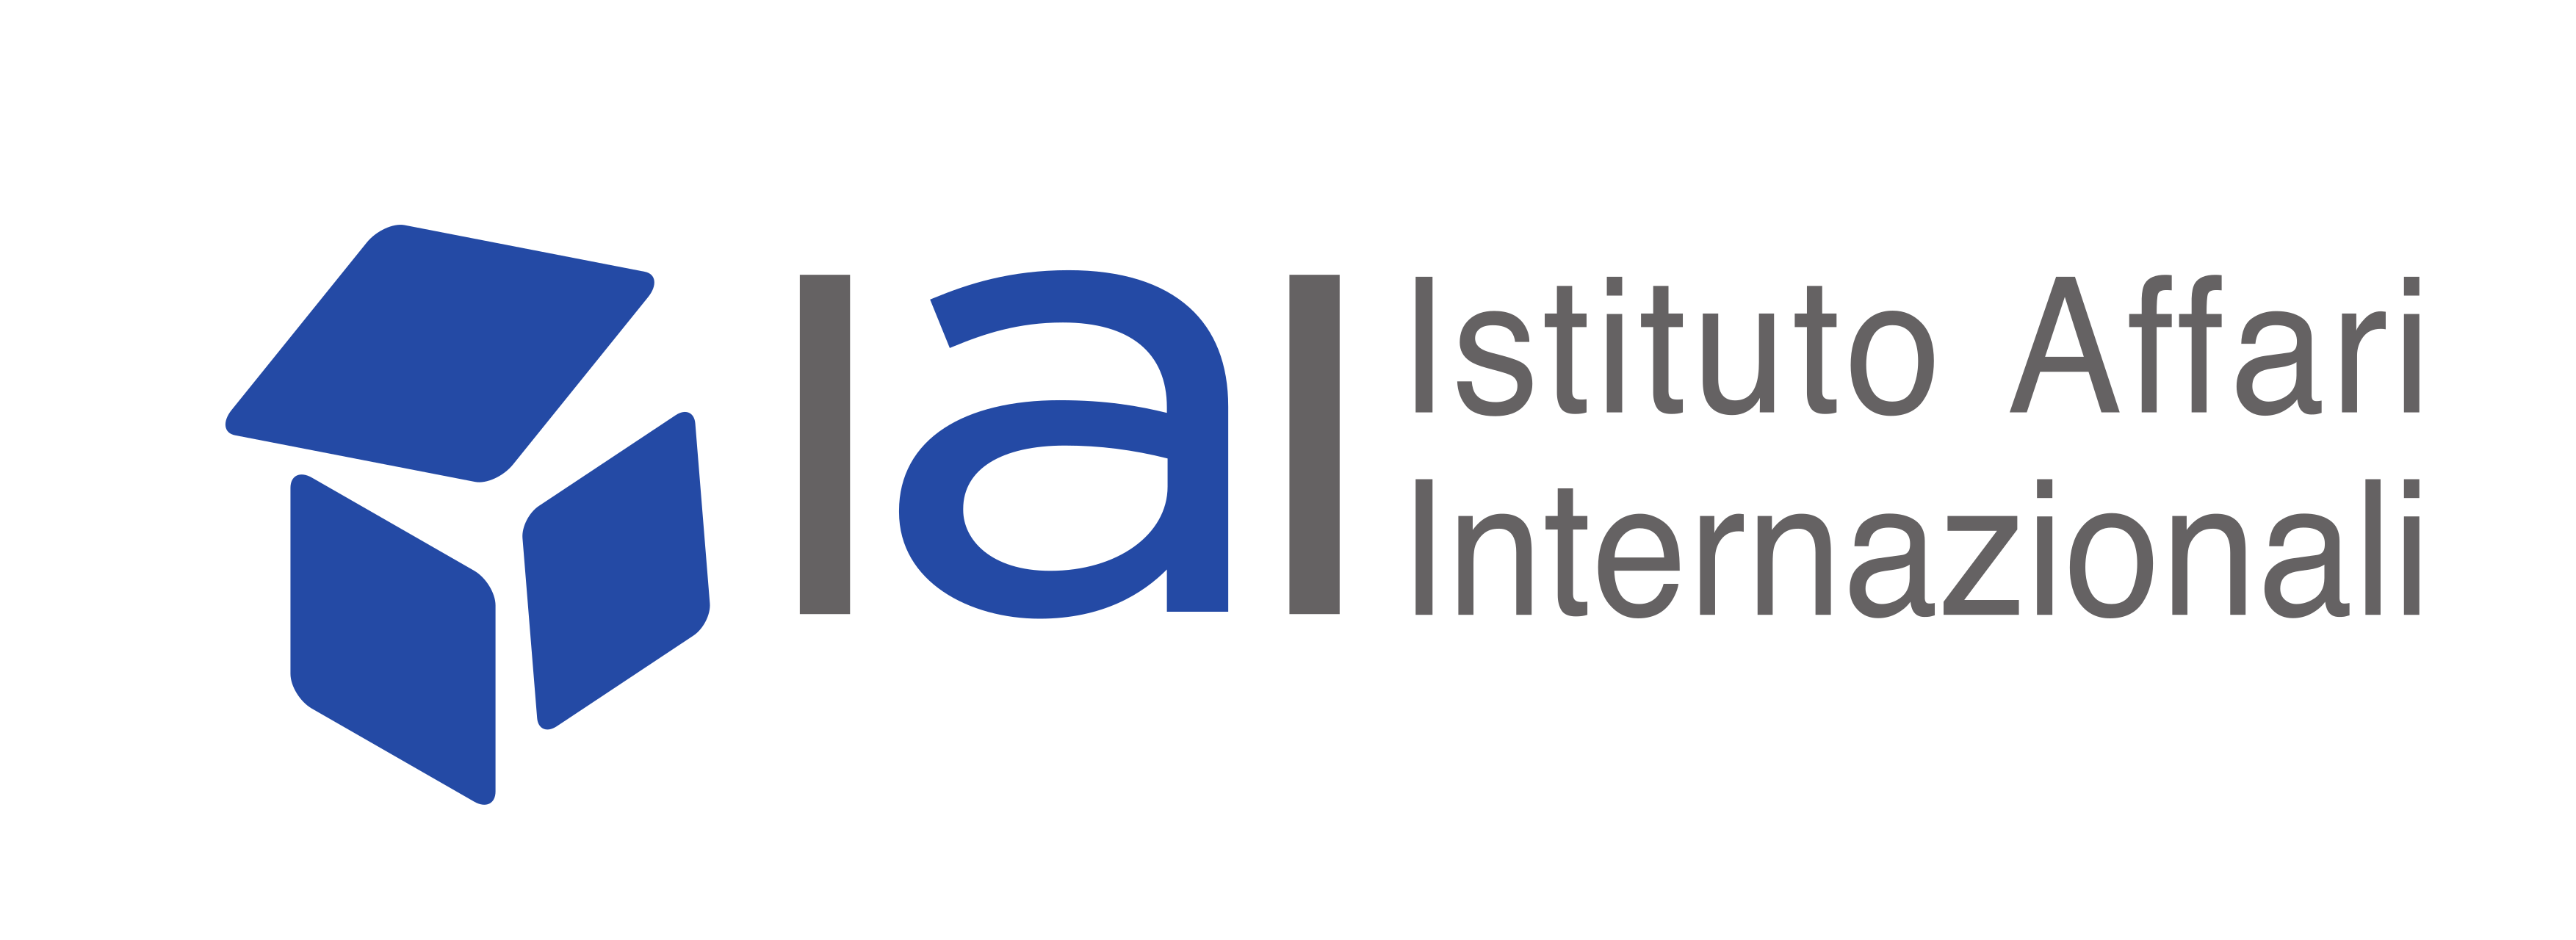 "Prize Competition ​""Young Talents for Italy, Europe and the World"", by the Istituto Affari Internazionali (IAI)"